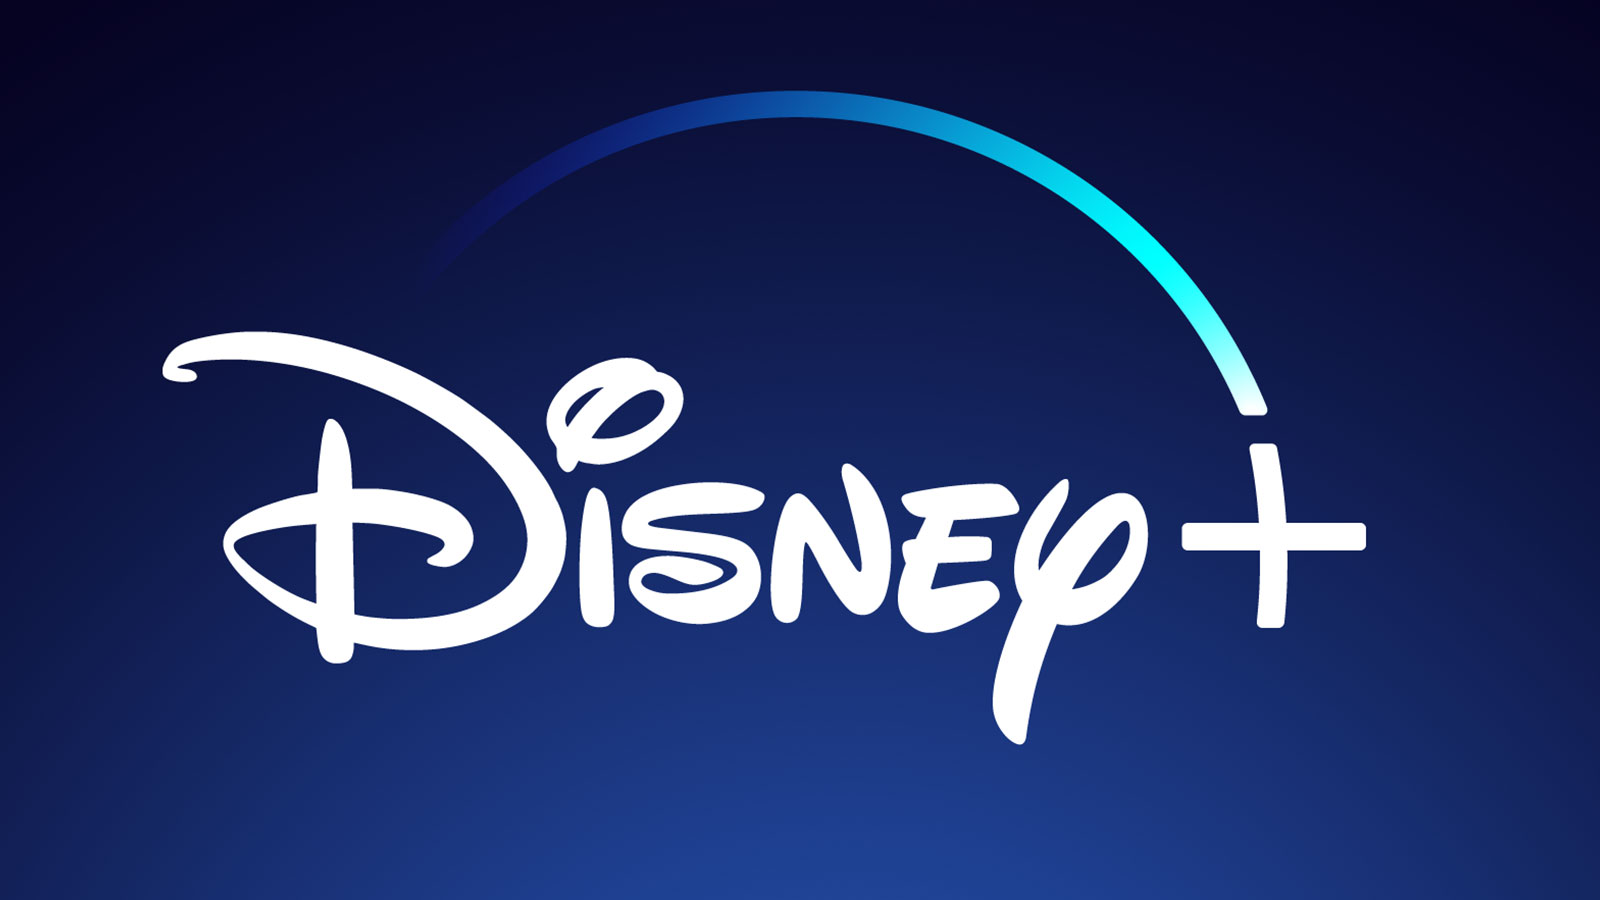 Disney+ What is new this month